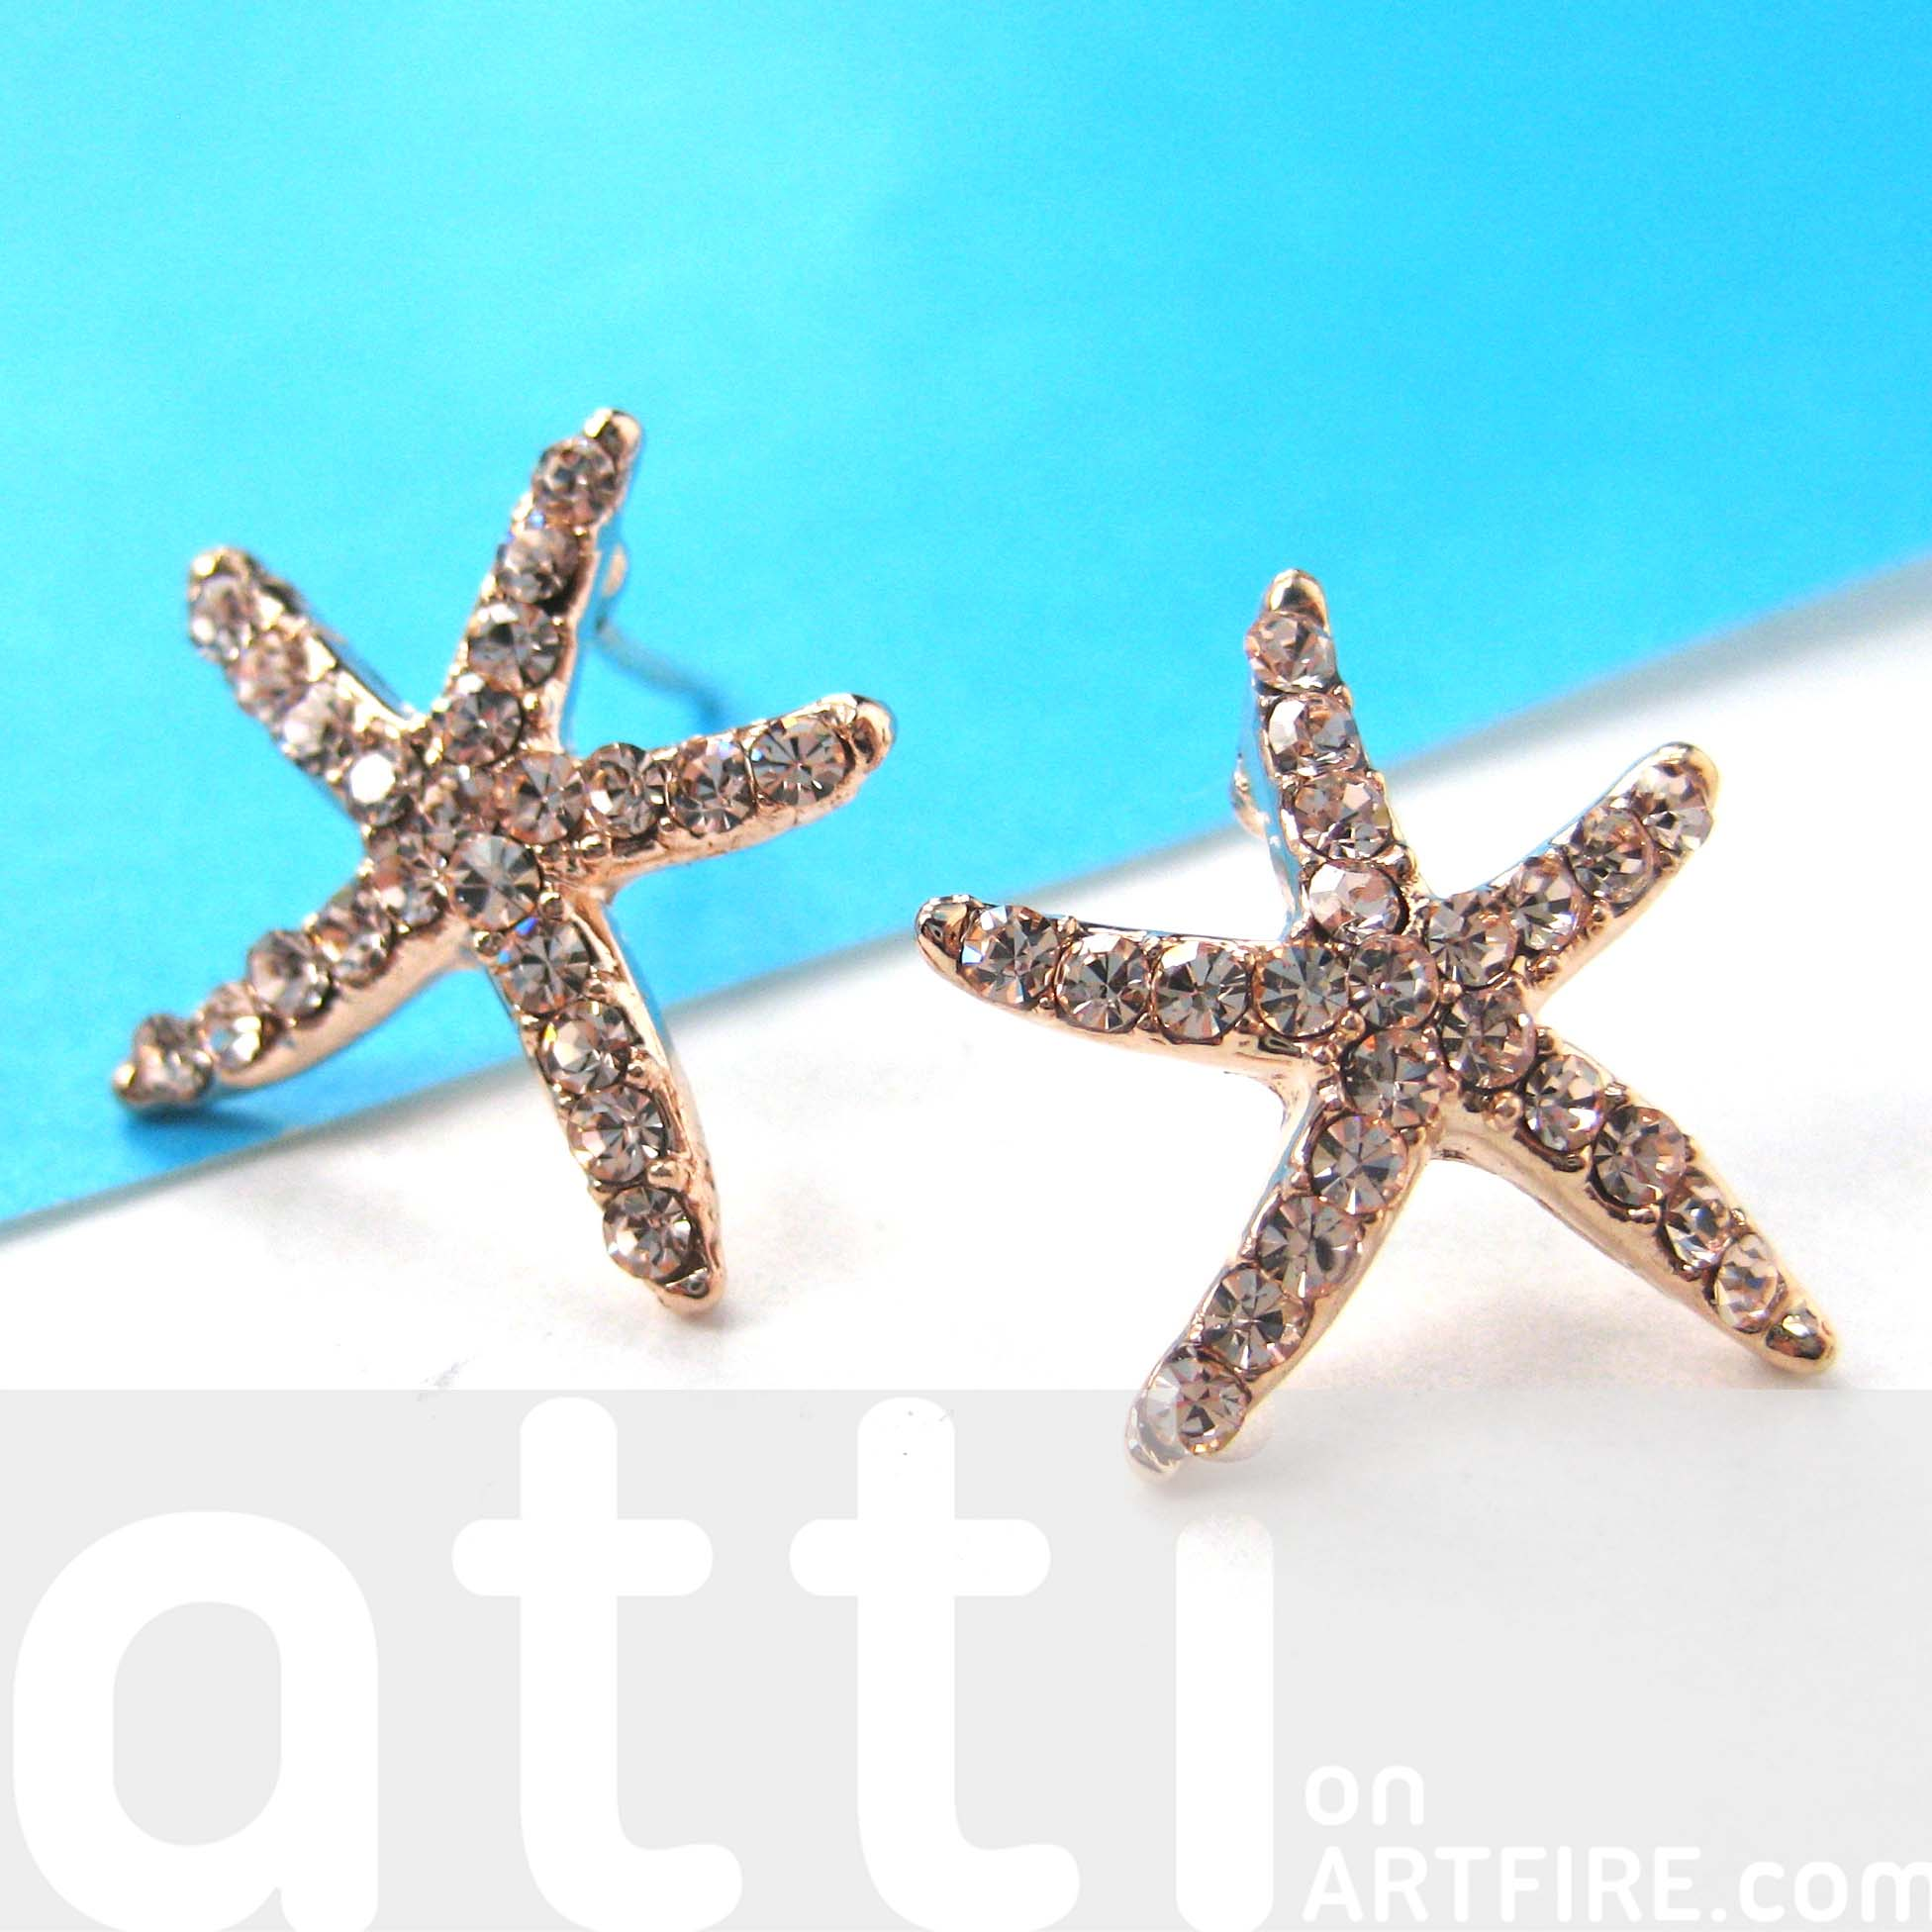 earring stud img thumbnail life nautical products piece set collections original small anchor earrings starfish buoy